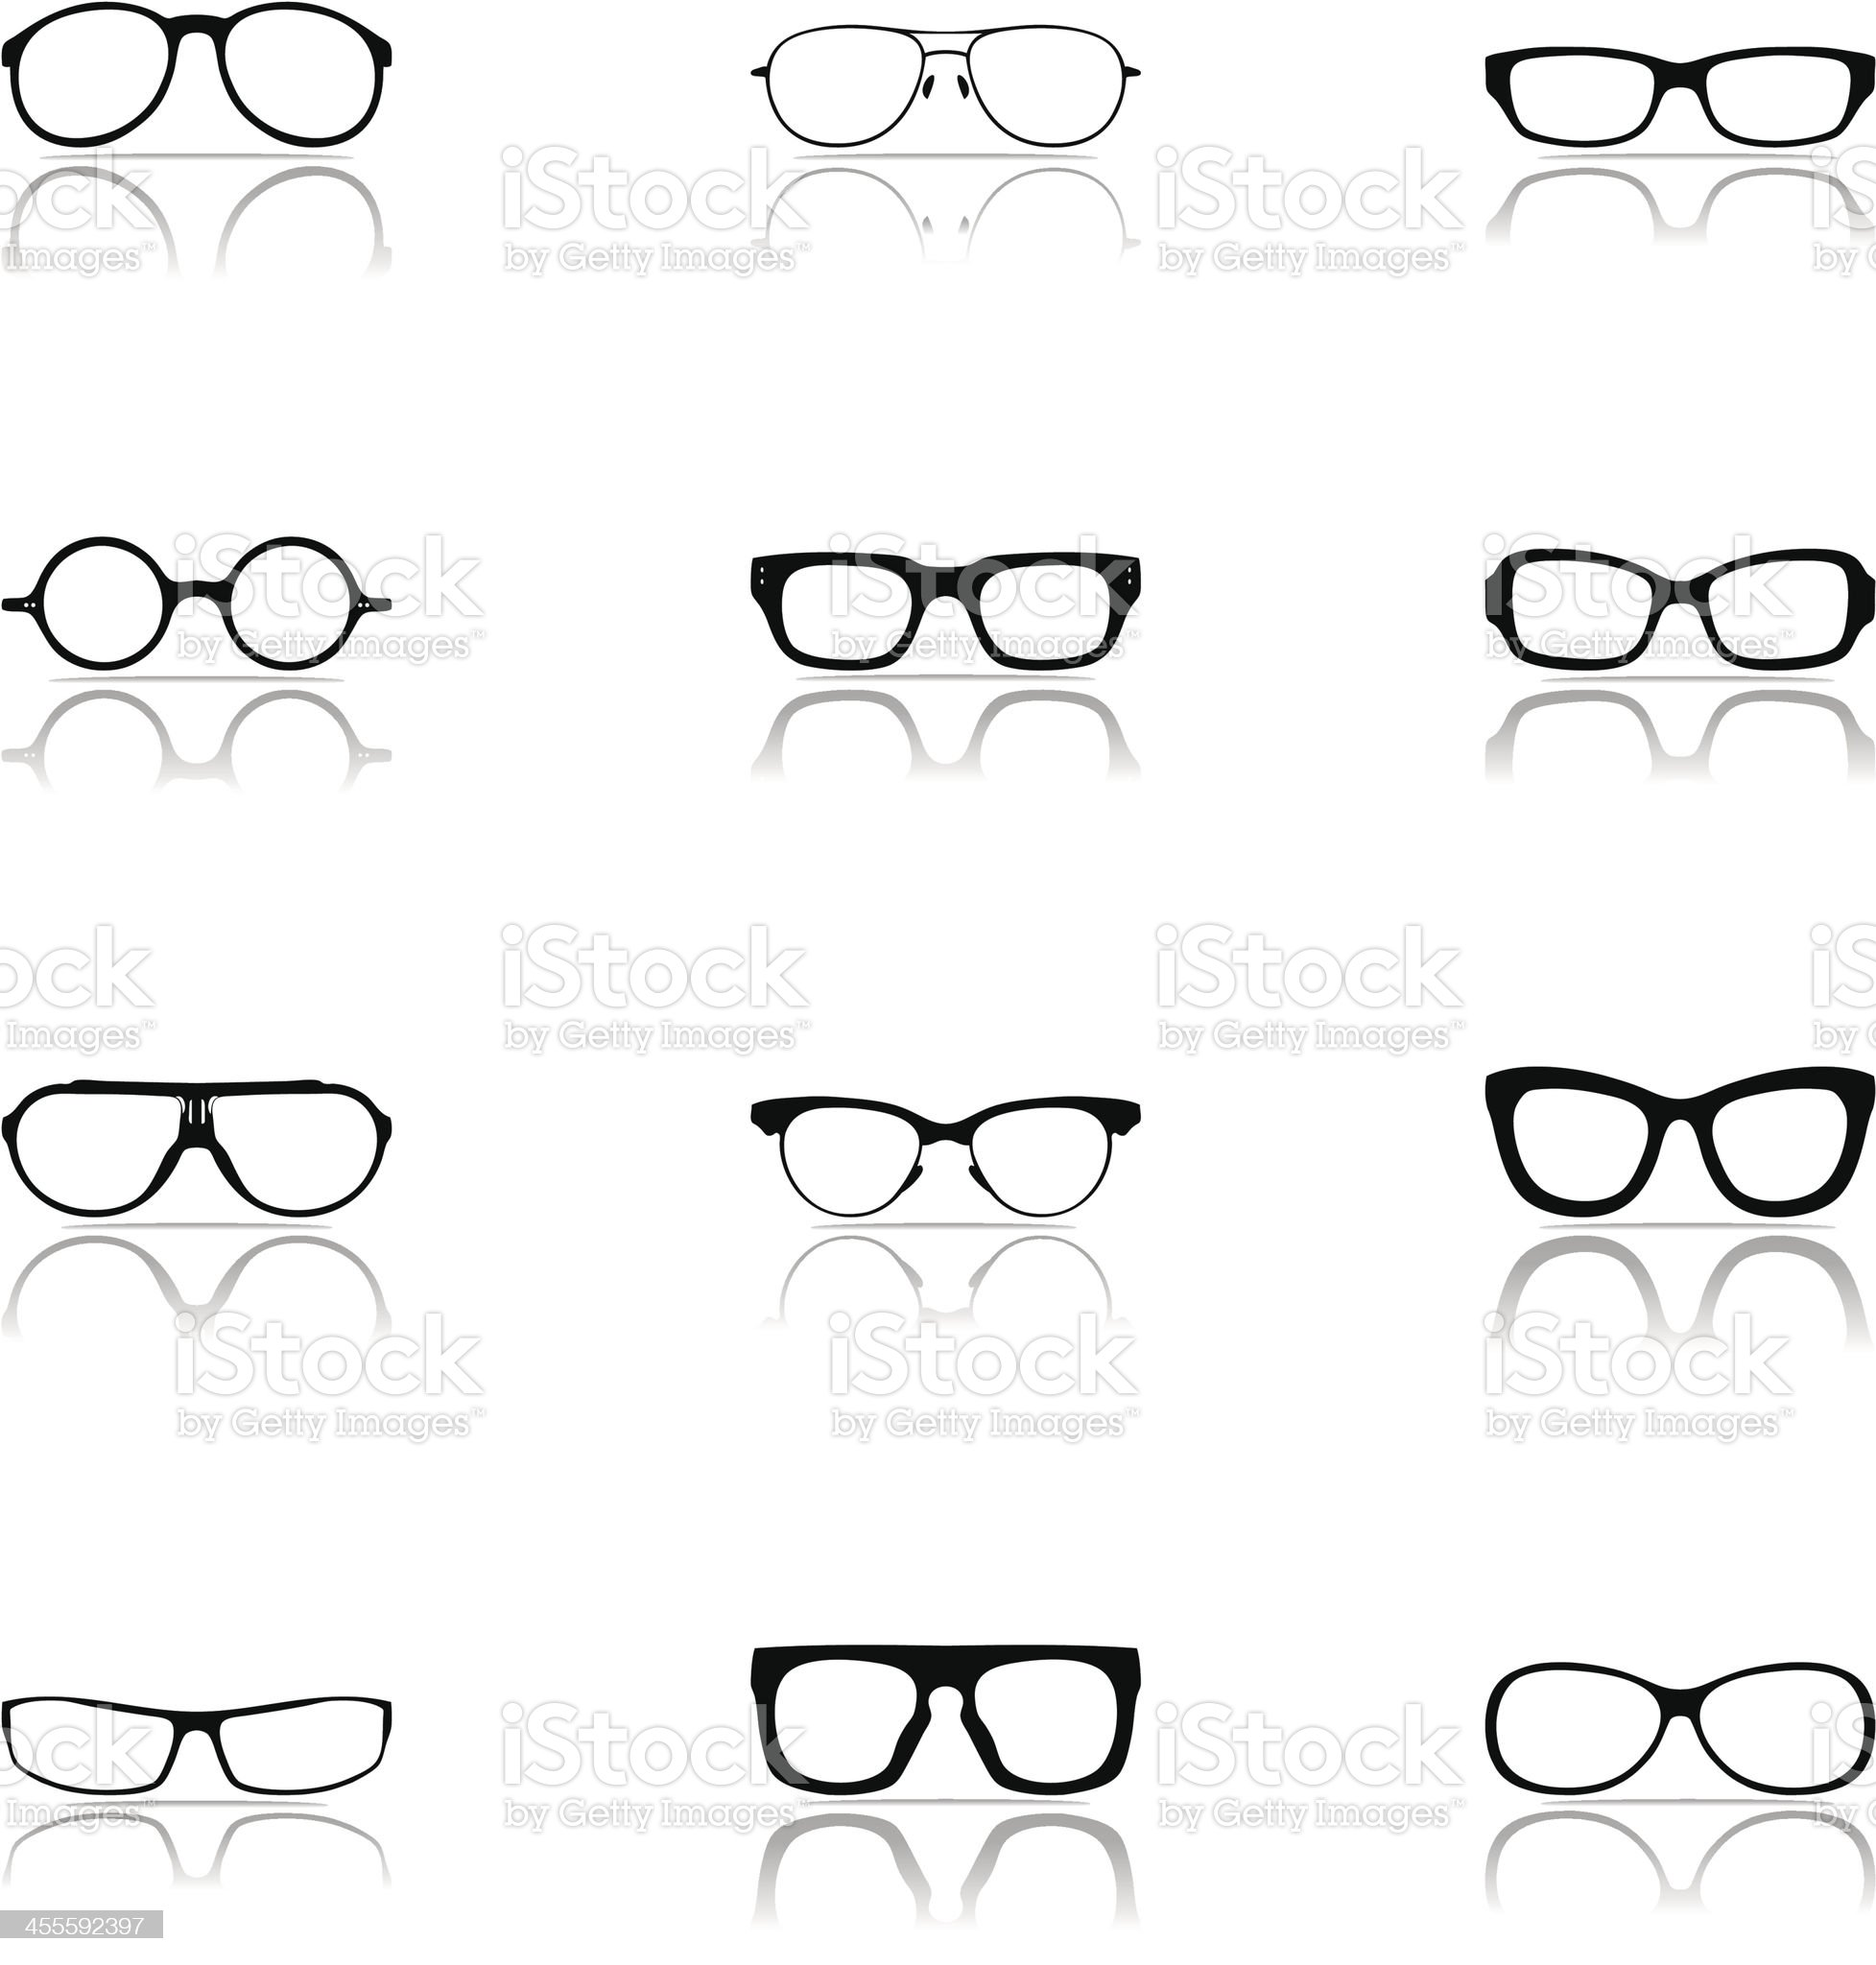 Sunglasses Icon Set royalty-free stock vector art